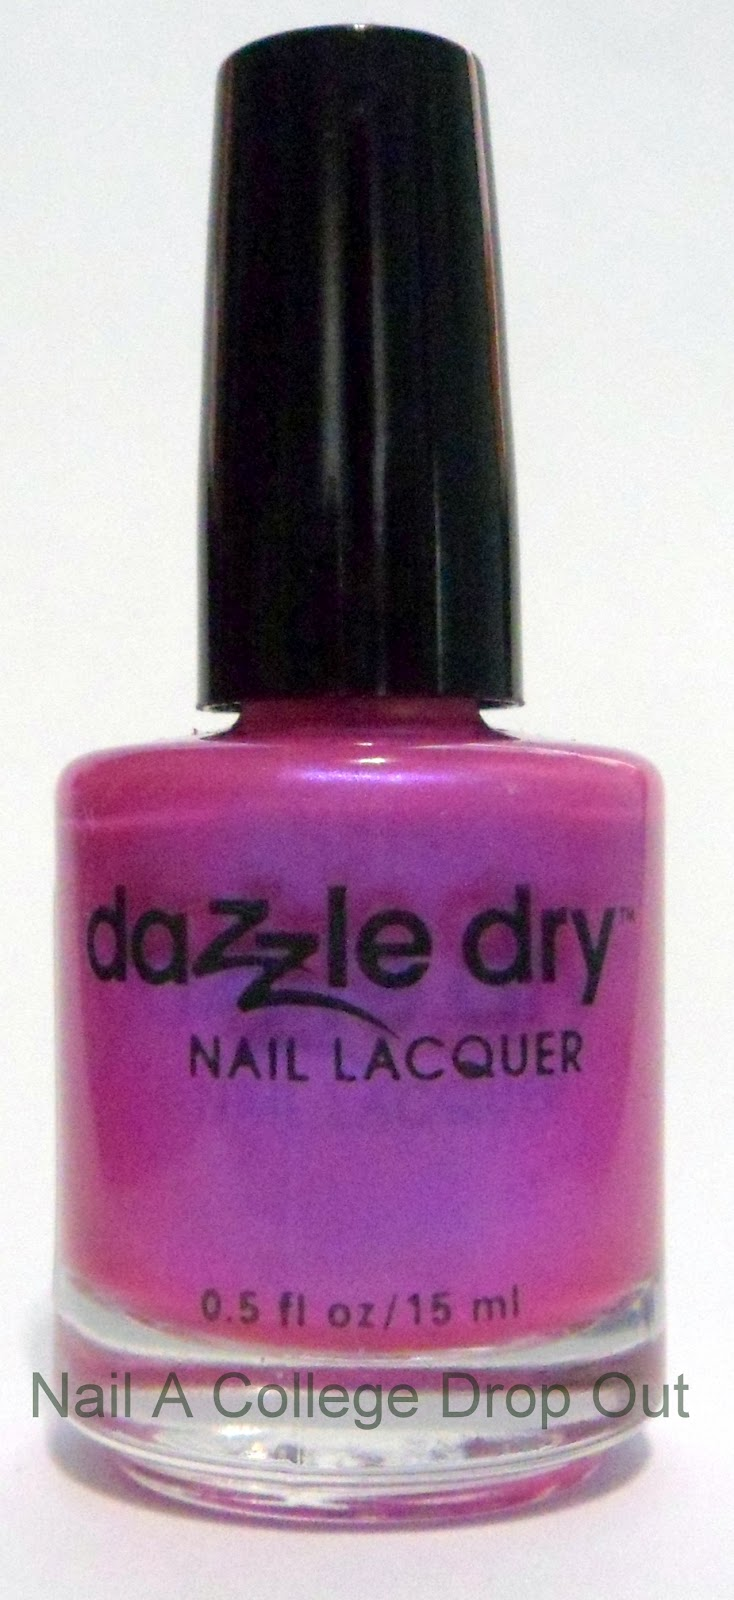 Nail A College Drop Out: Dazzle Dry Review